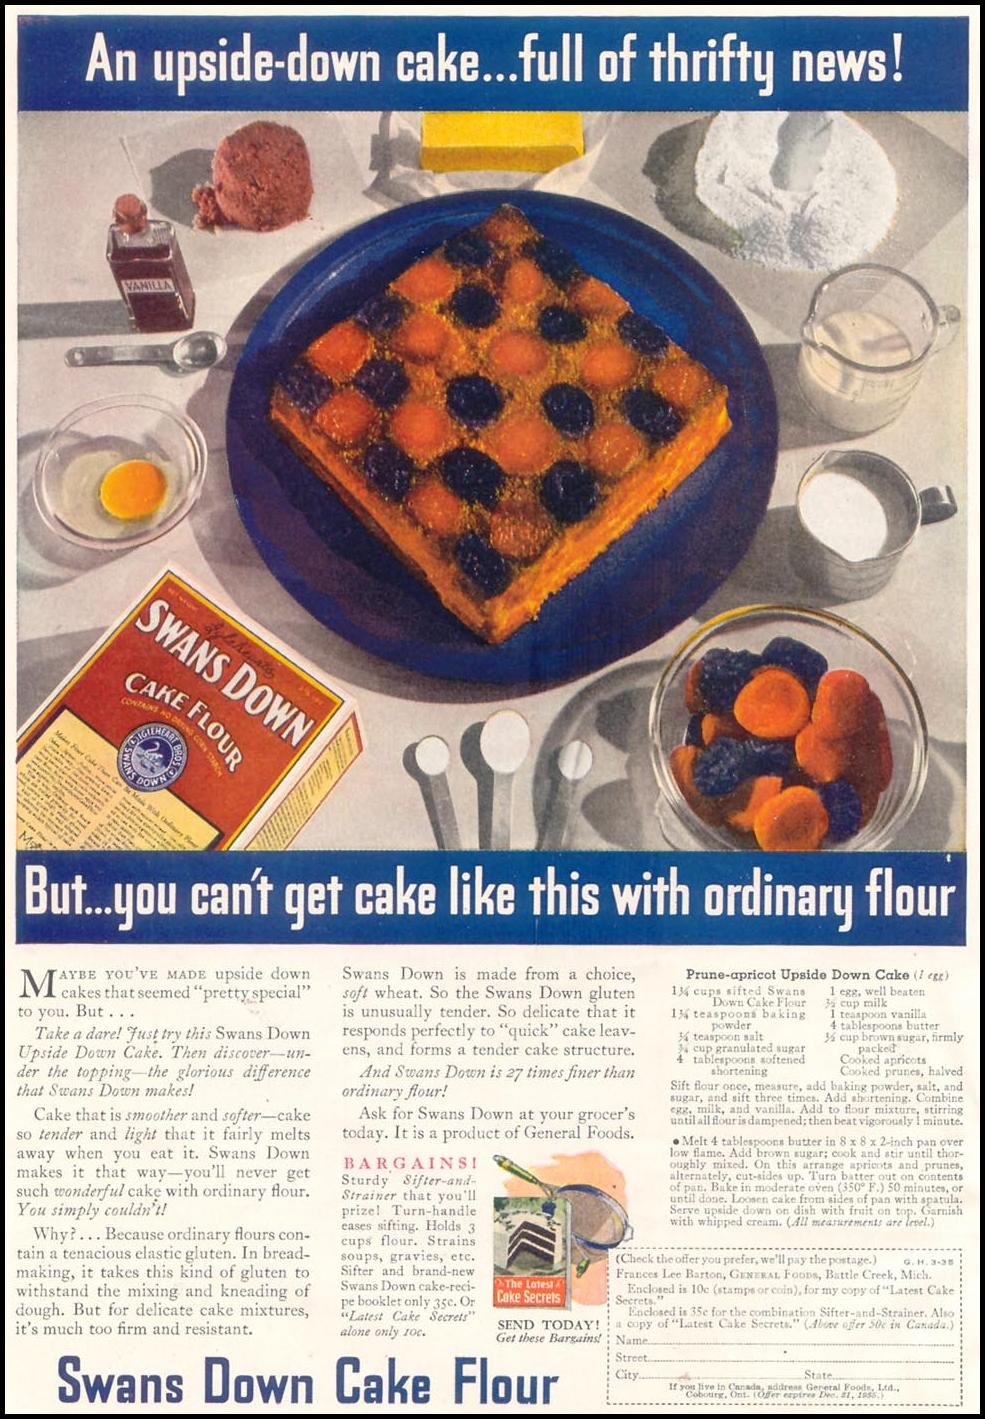 SWANS DOWN CAKE FLOUR GOOD HOUSEKEEPING 03/01/1935